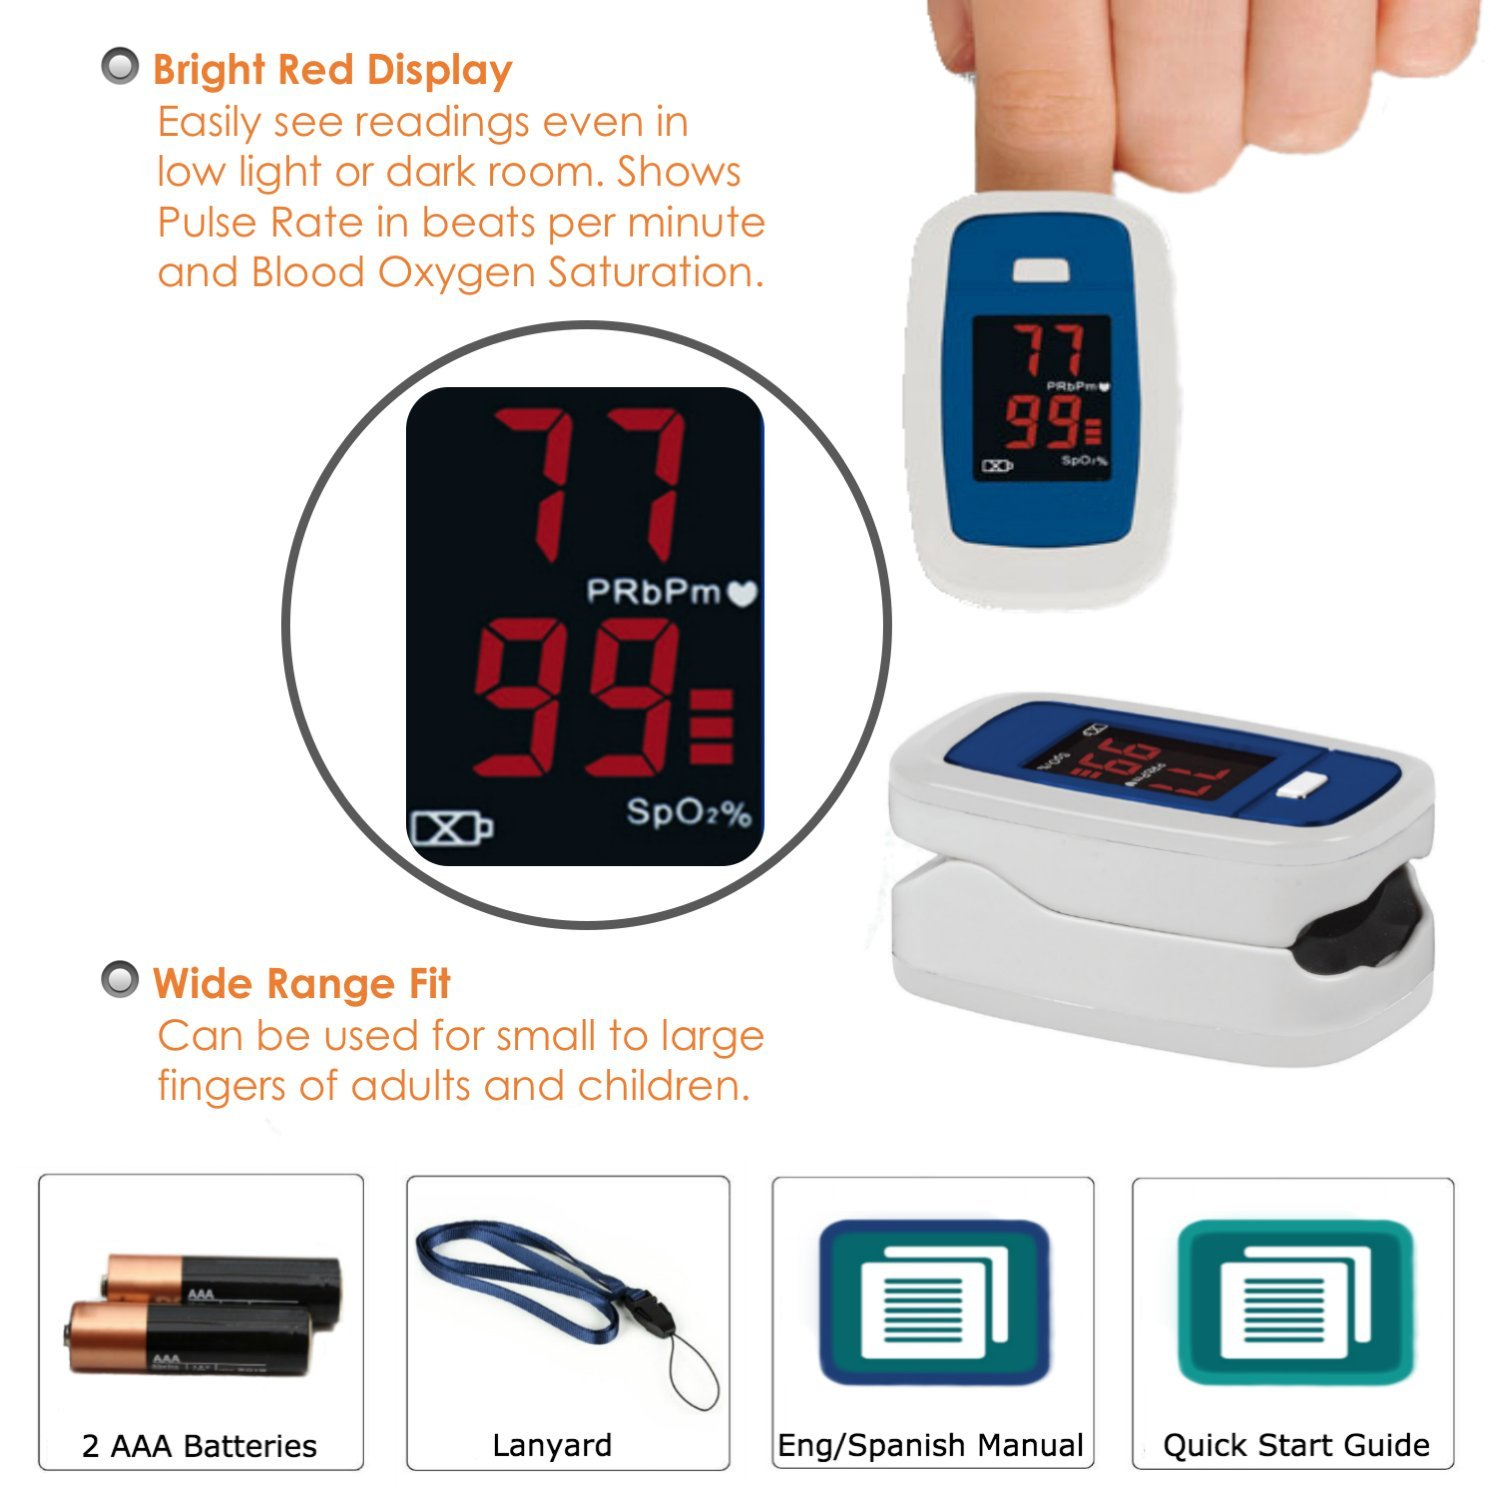 Blood Pressure Monitor + Infrared Thermometer + Fingertip Pulse Oximeter +  Vital Signs Guide Book with COPD CHF CVA Management Charts and Nutrition